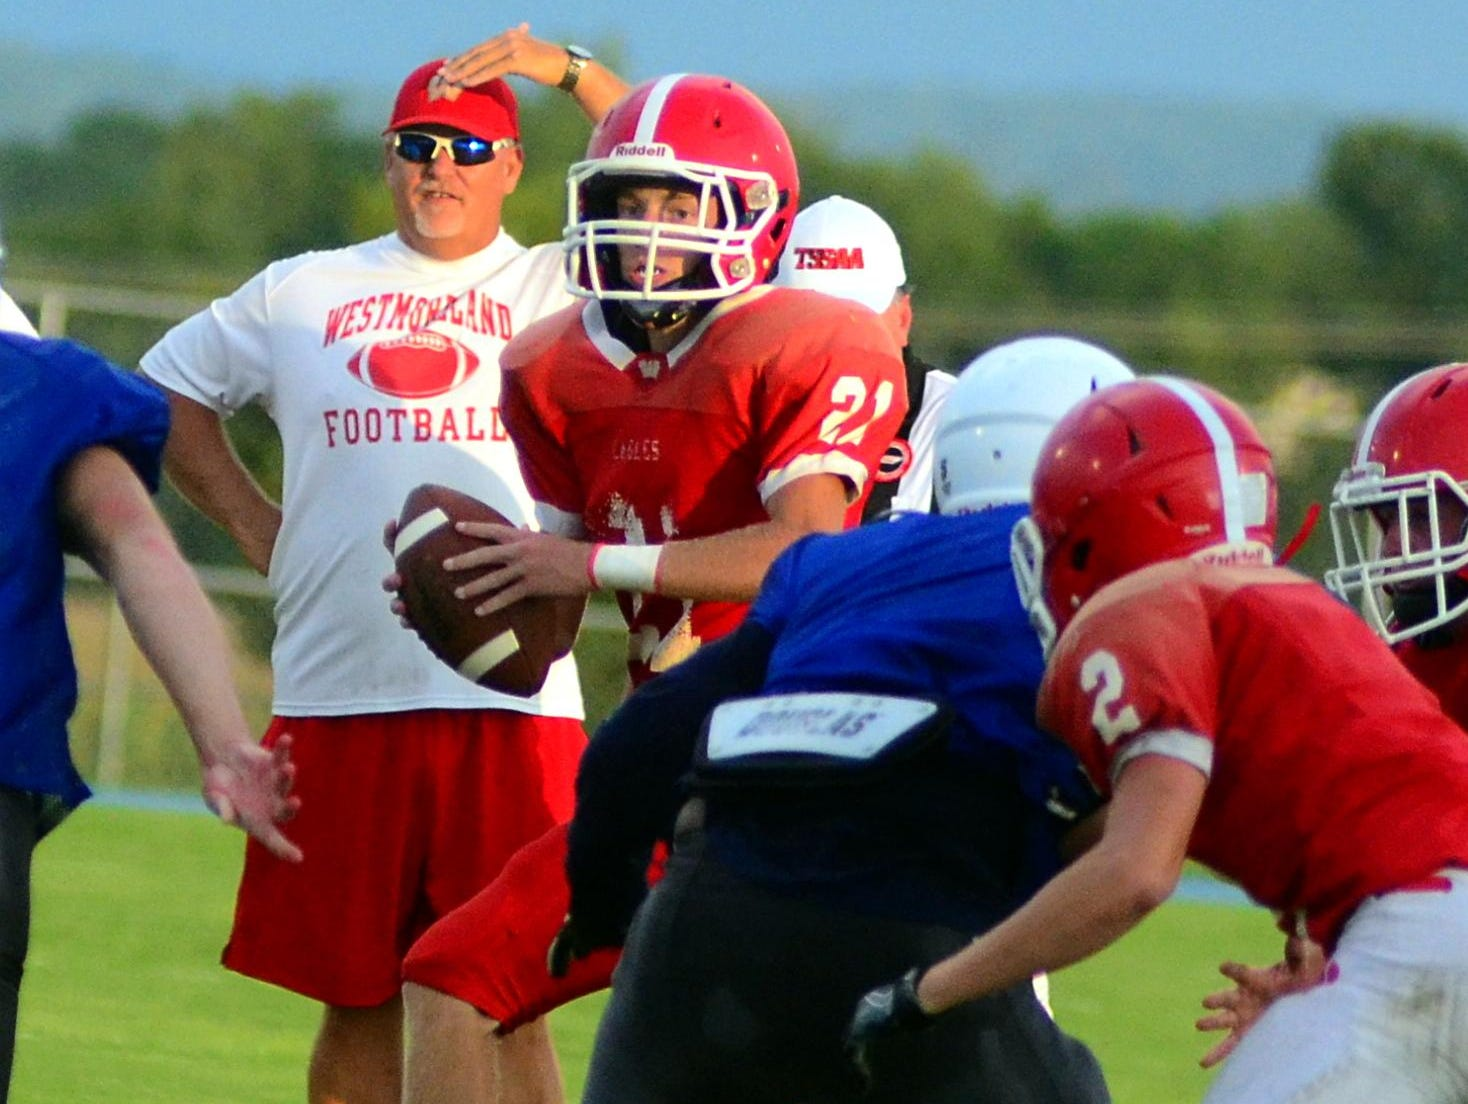 Senior Blake Carter is expected to be Westmoreland's starting quarterback for head coach Steve Harris.